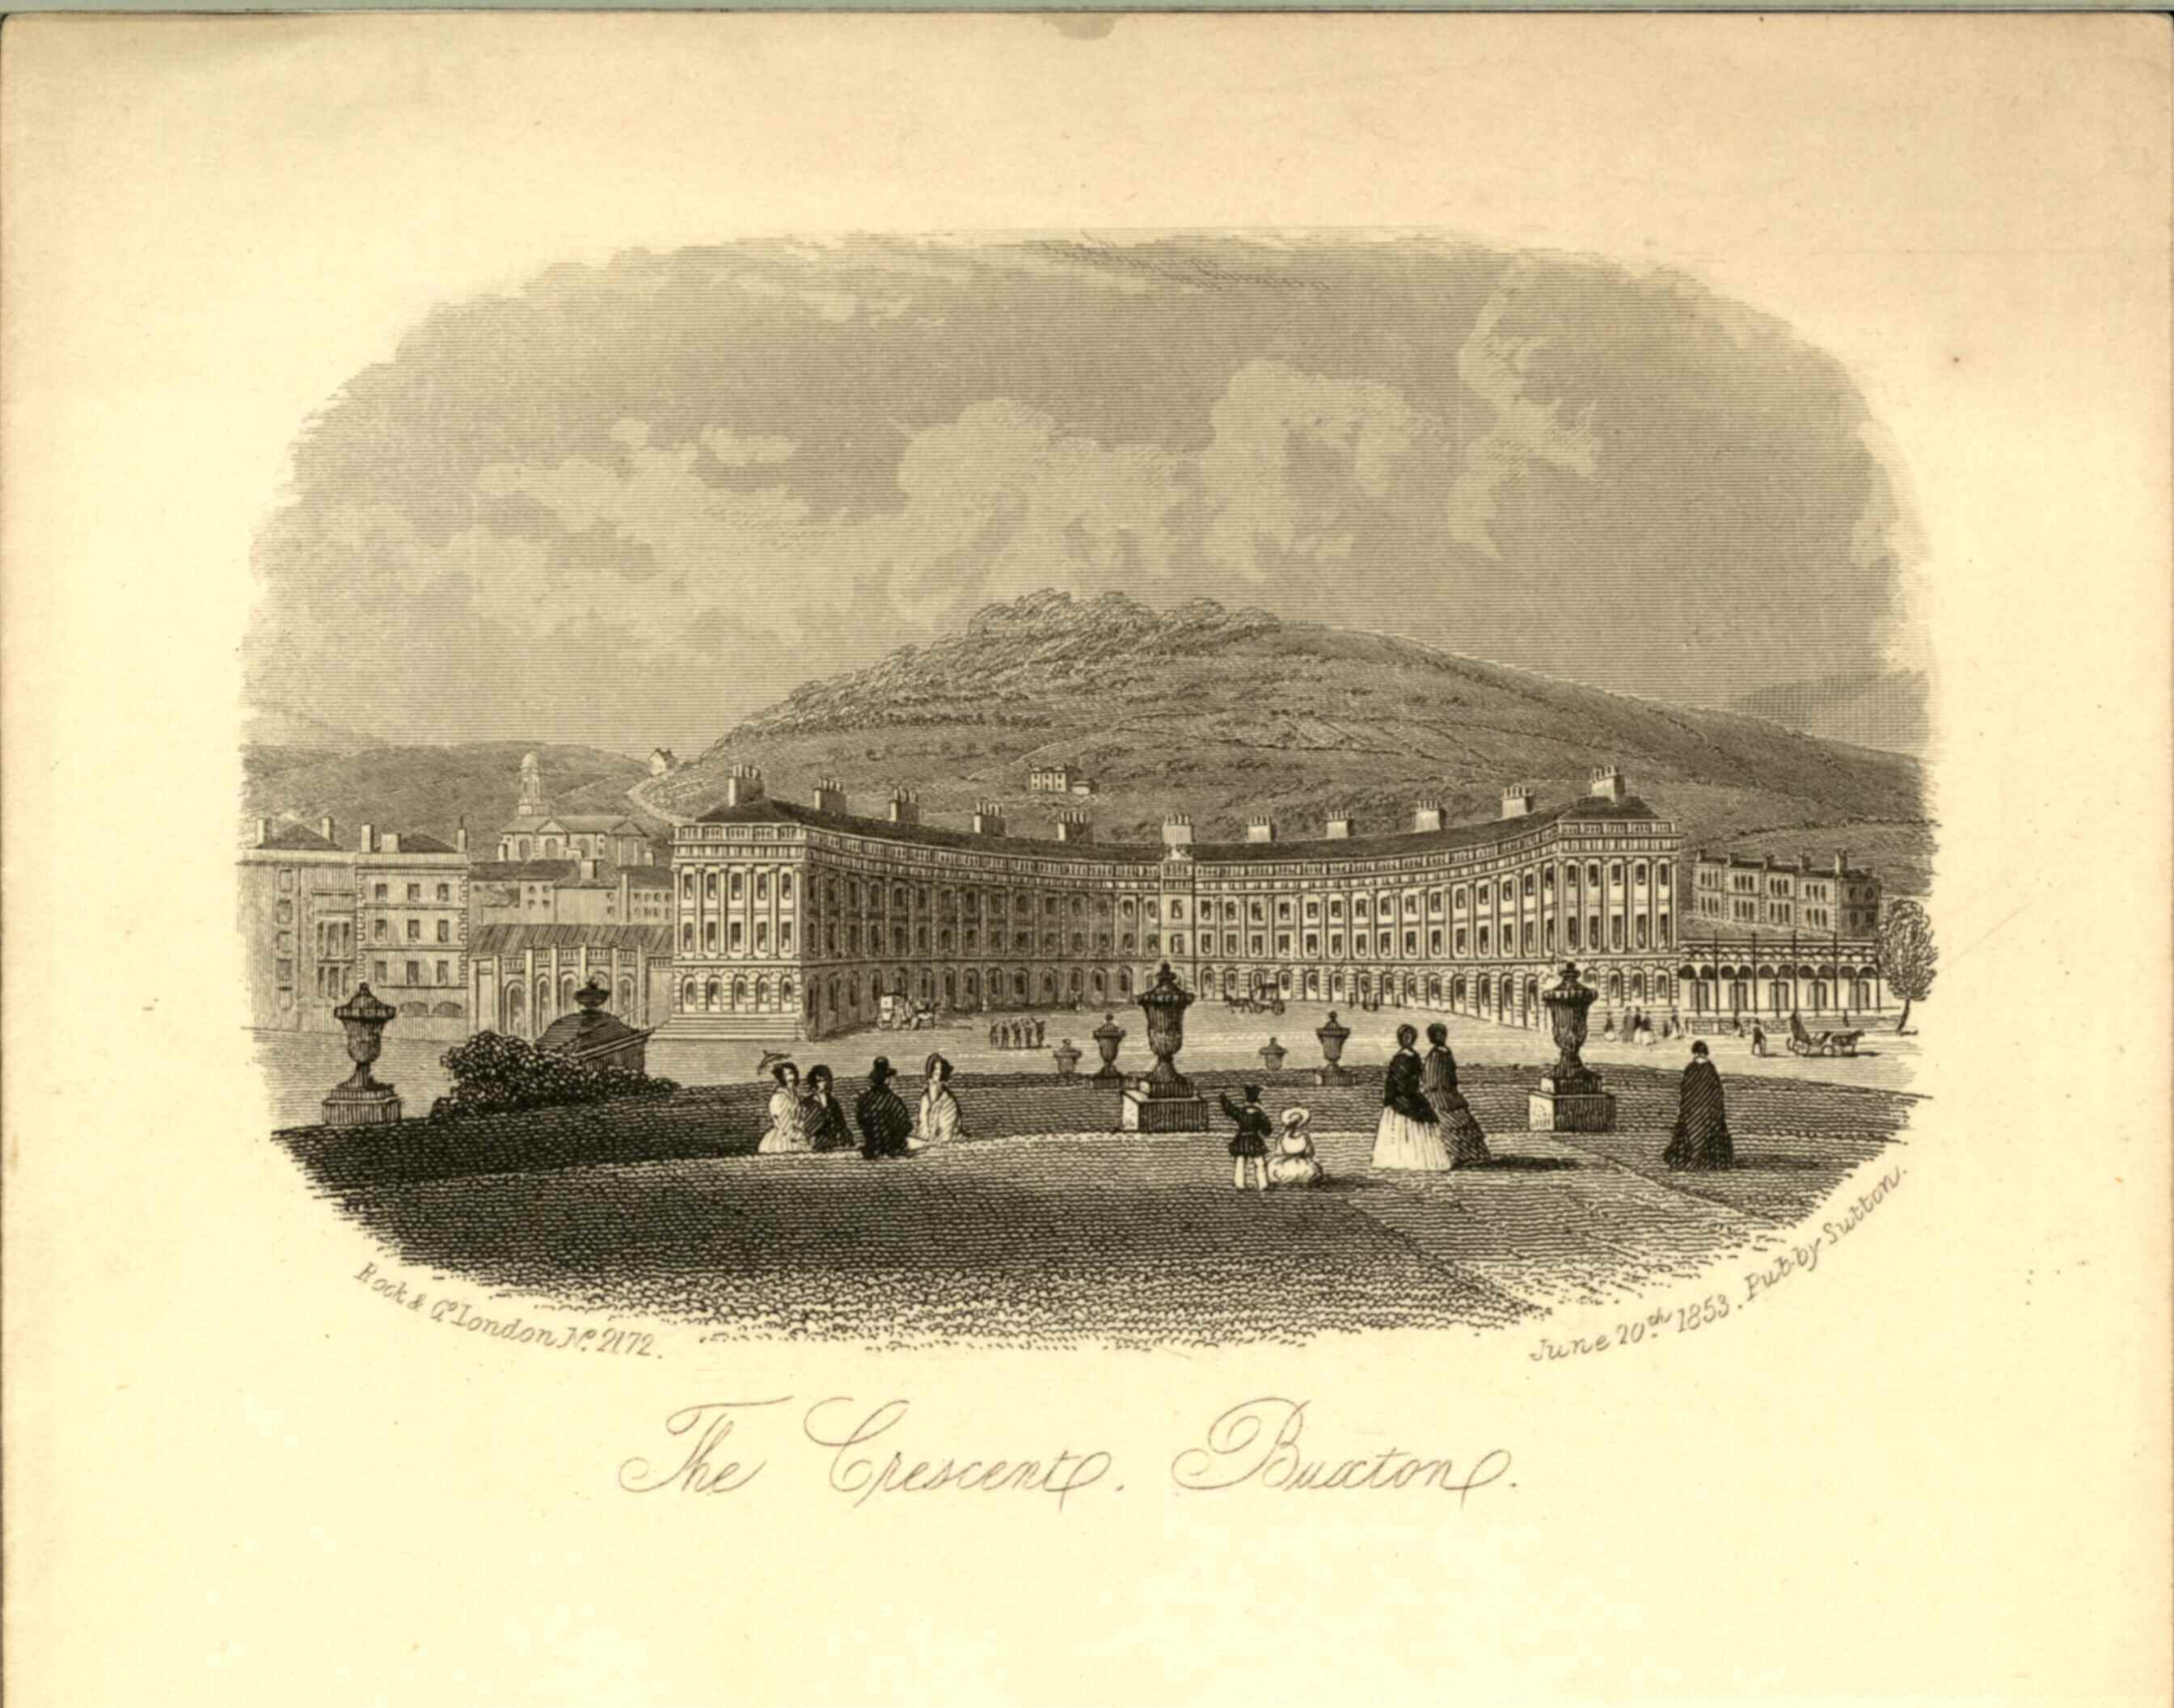 Print engraving of the view of The Crescent from the Slopes, about 1853.